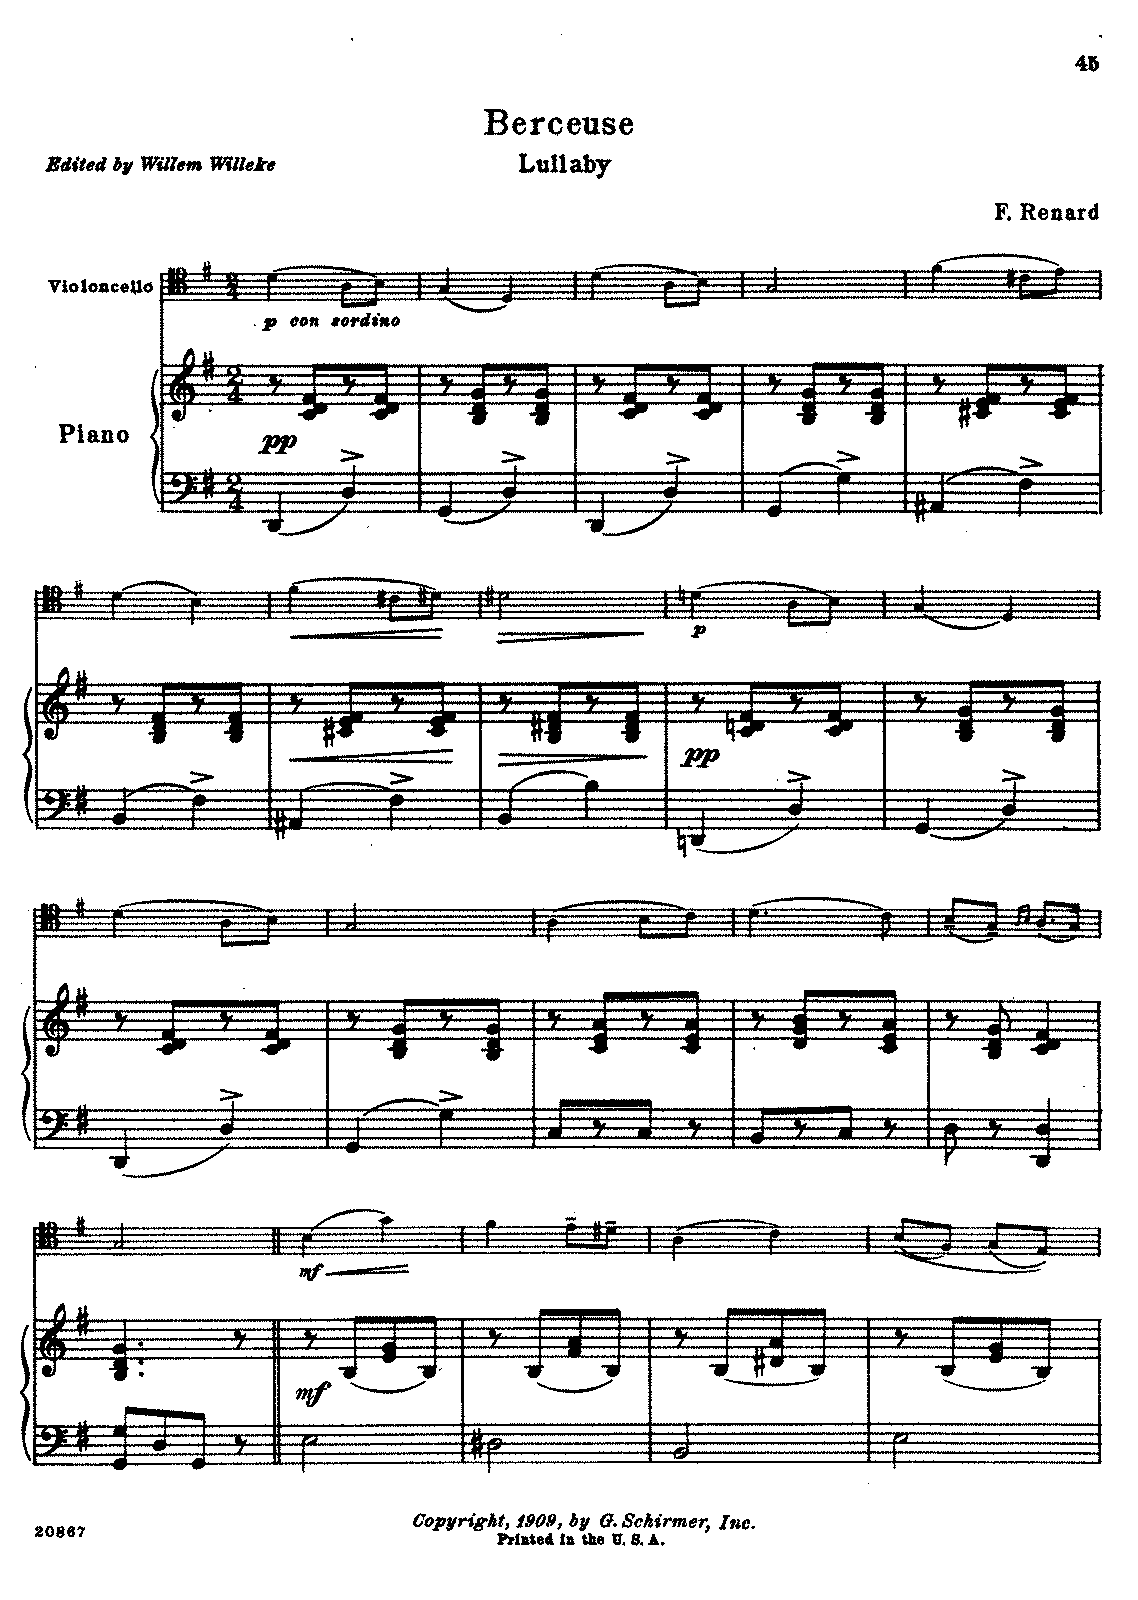 PMLP175431-Renard - Berceuse Lullaby (Willeke) for cello and piano.pdf